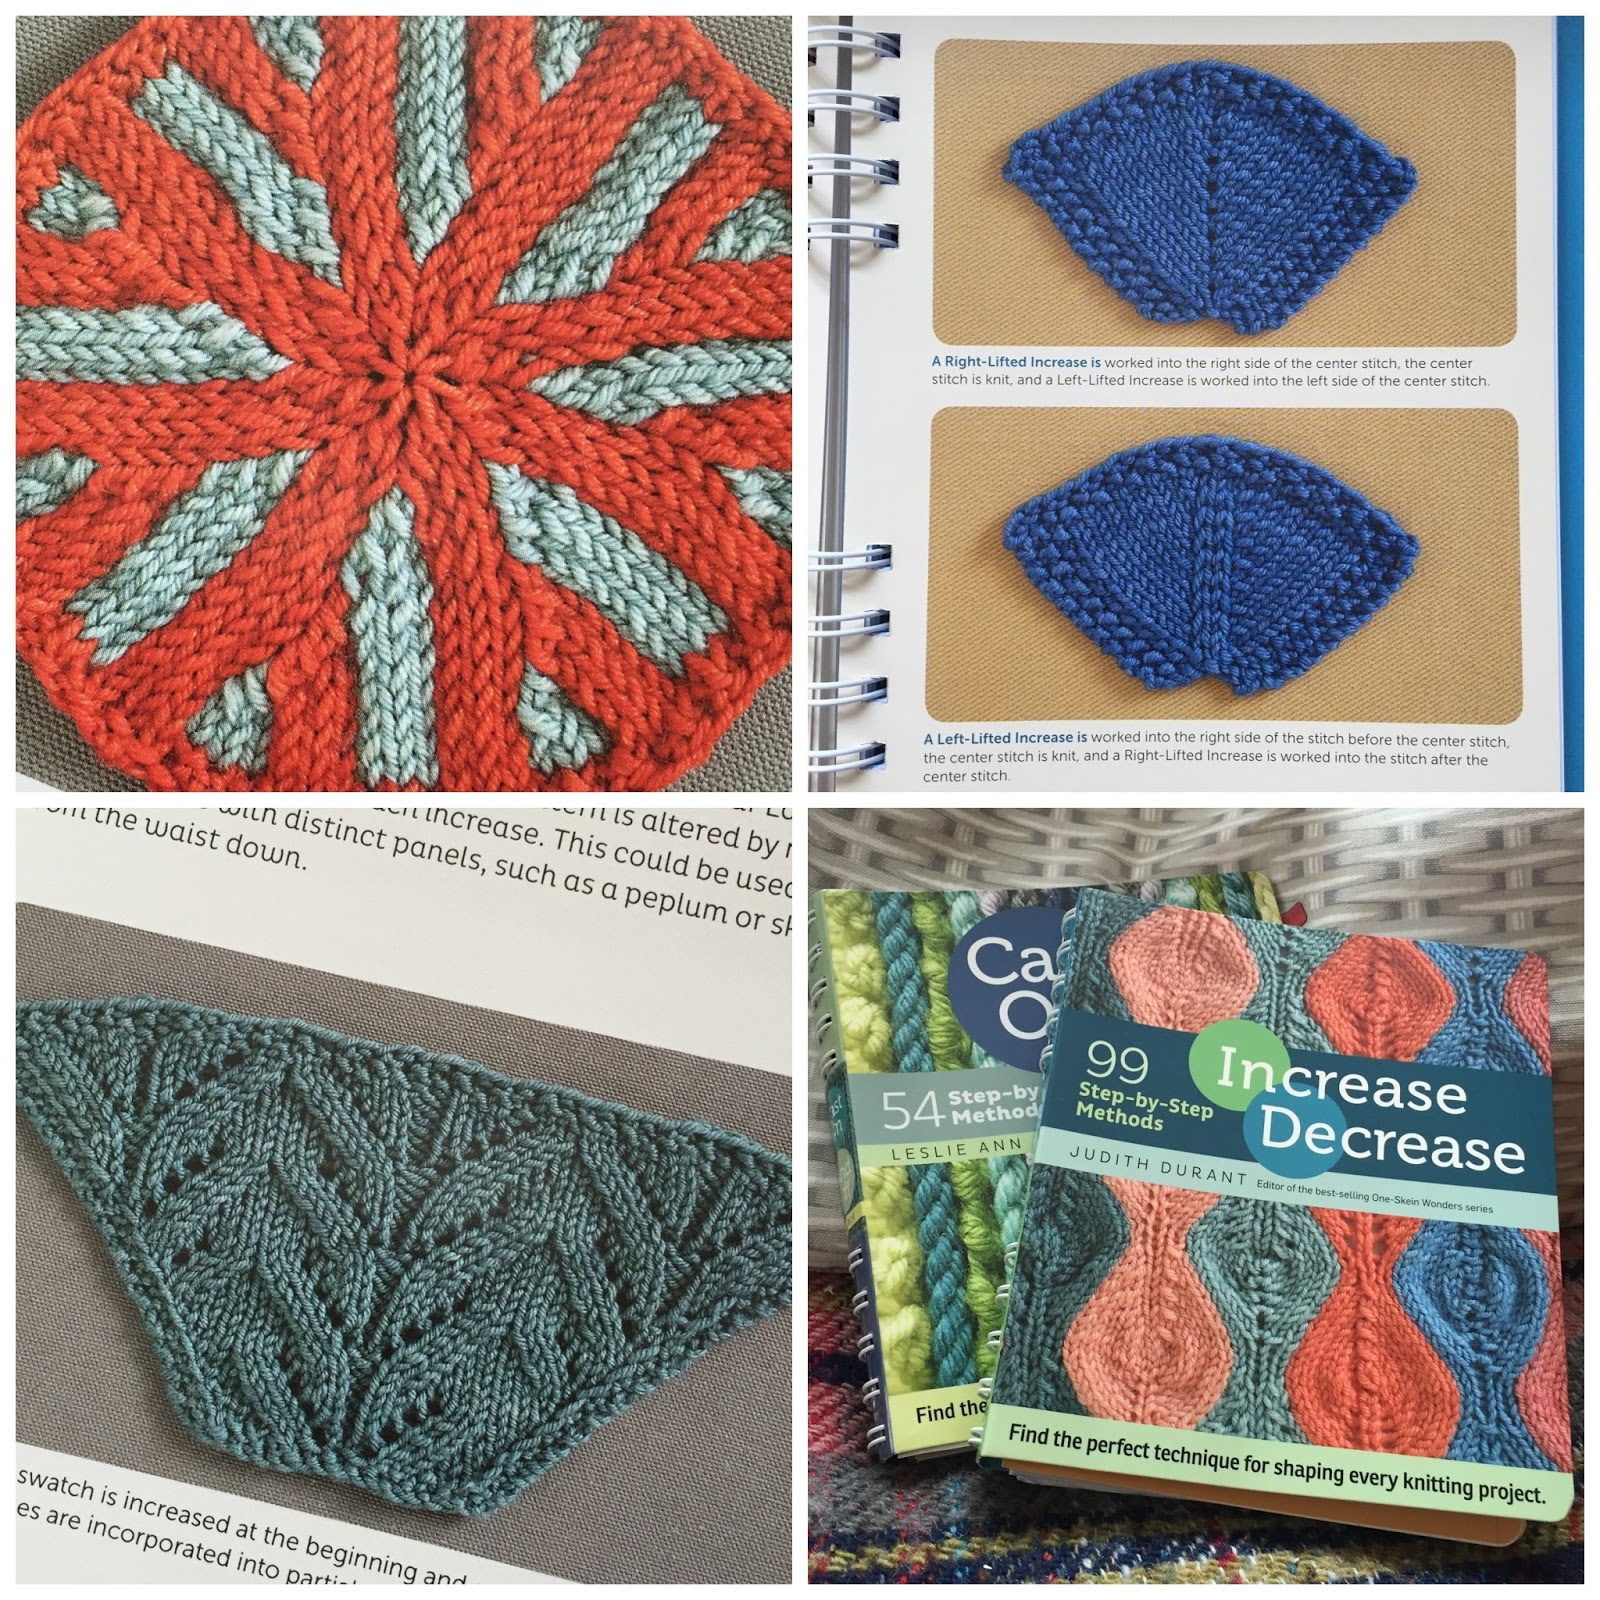 Knitting Stitch Decrease Calculator : Increase Decrease - 99 step-by-step methods (Book Review) Crafts from the C...